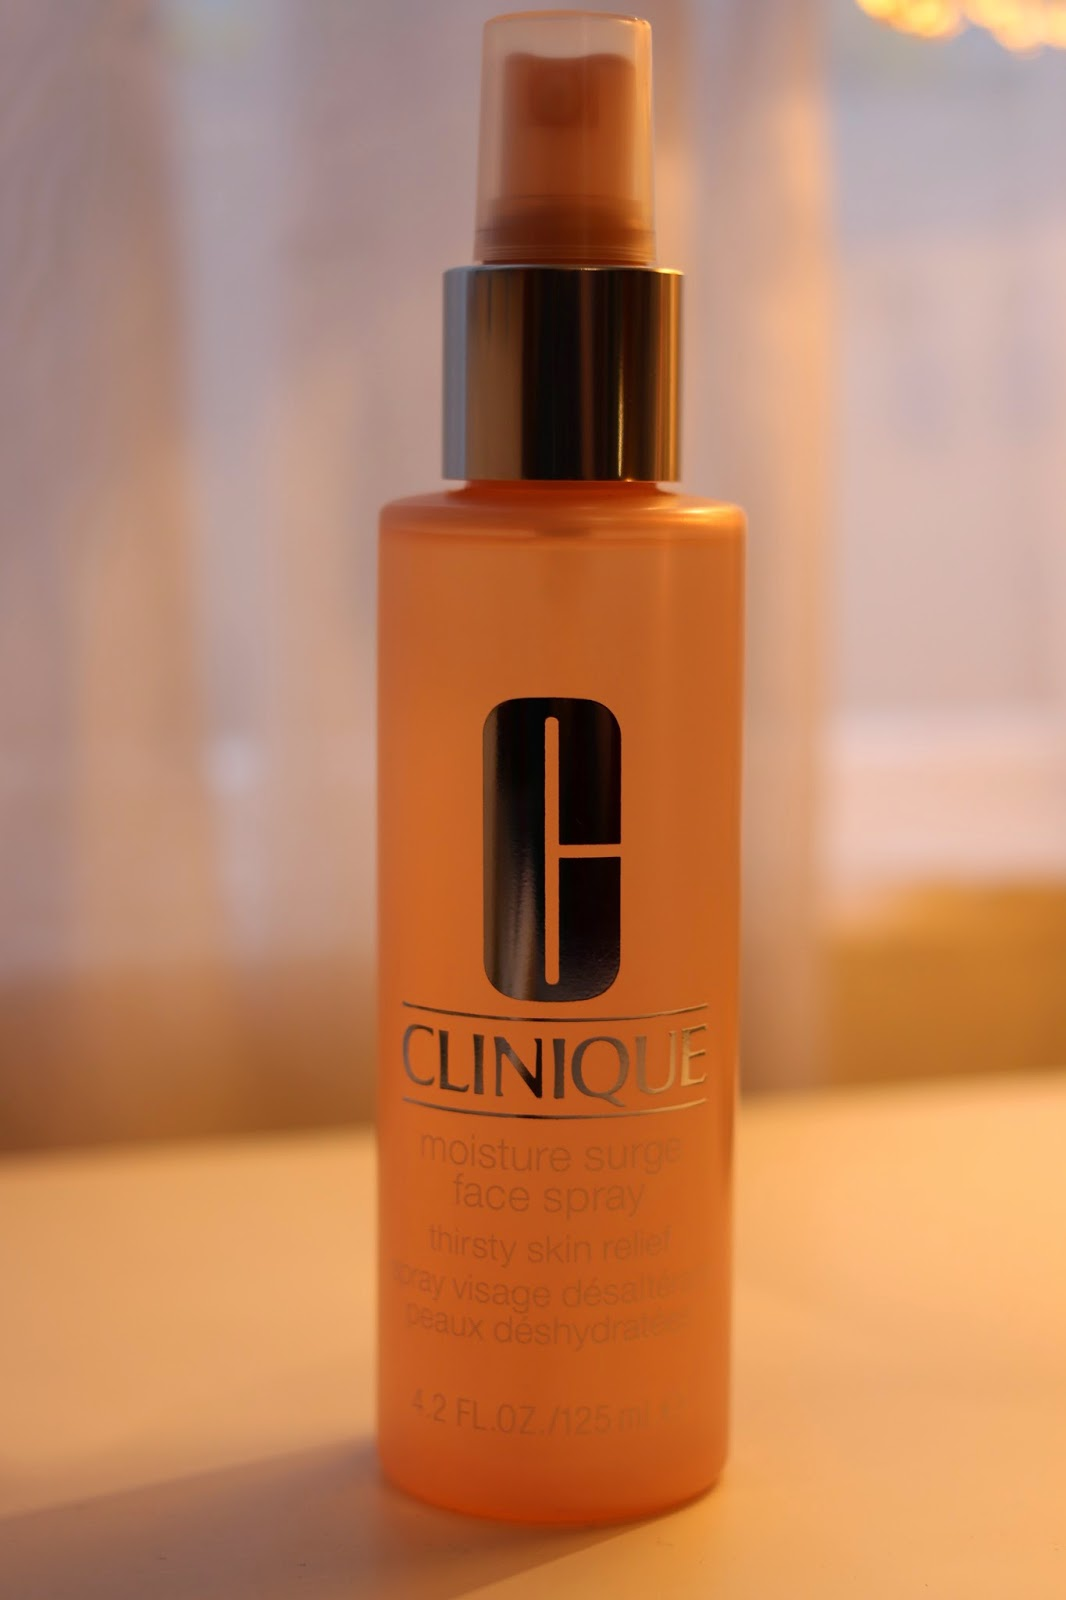 Clinique Moisture Surge Face Spray - Caroline Hirons